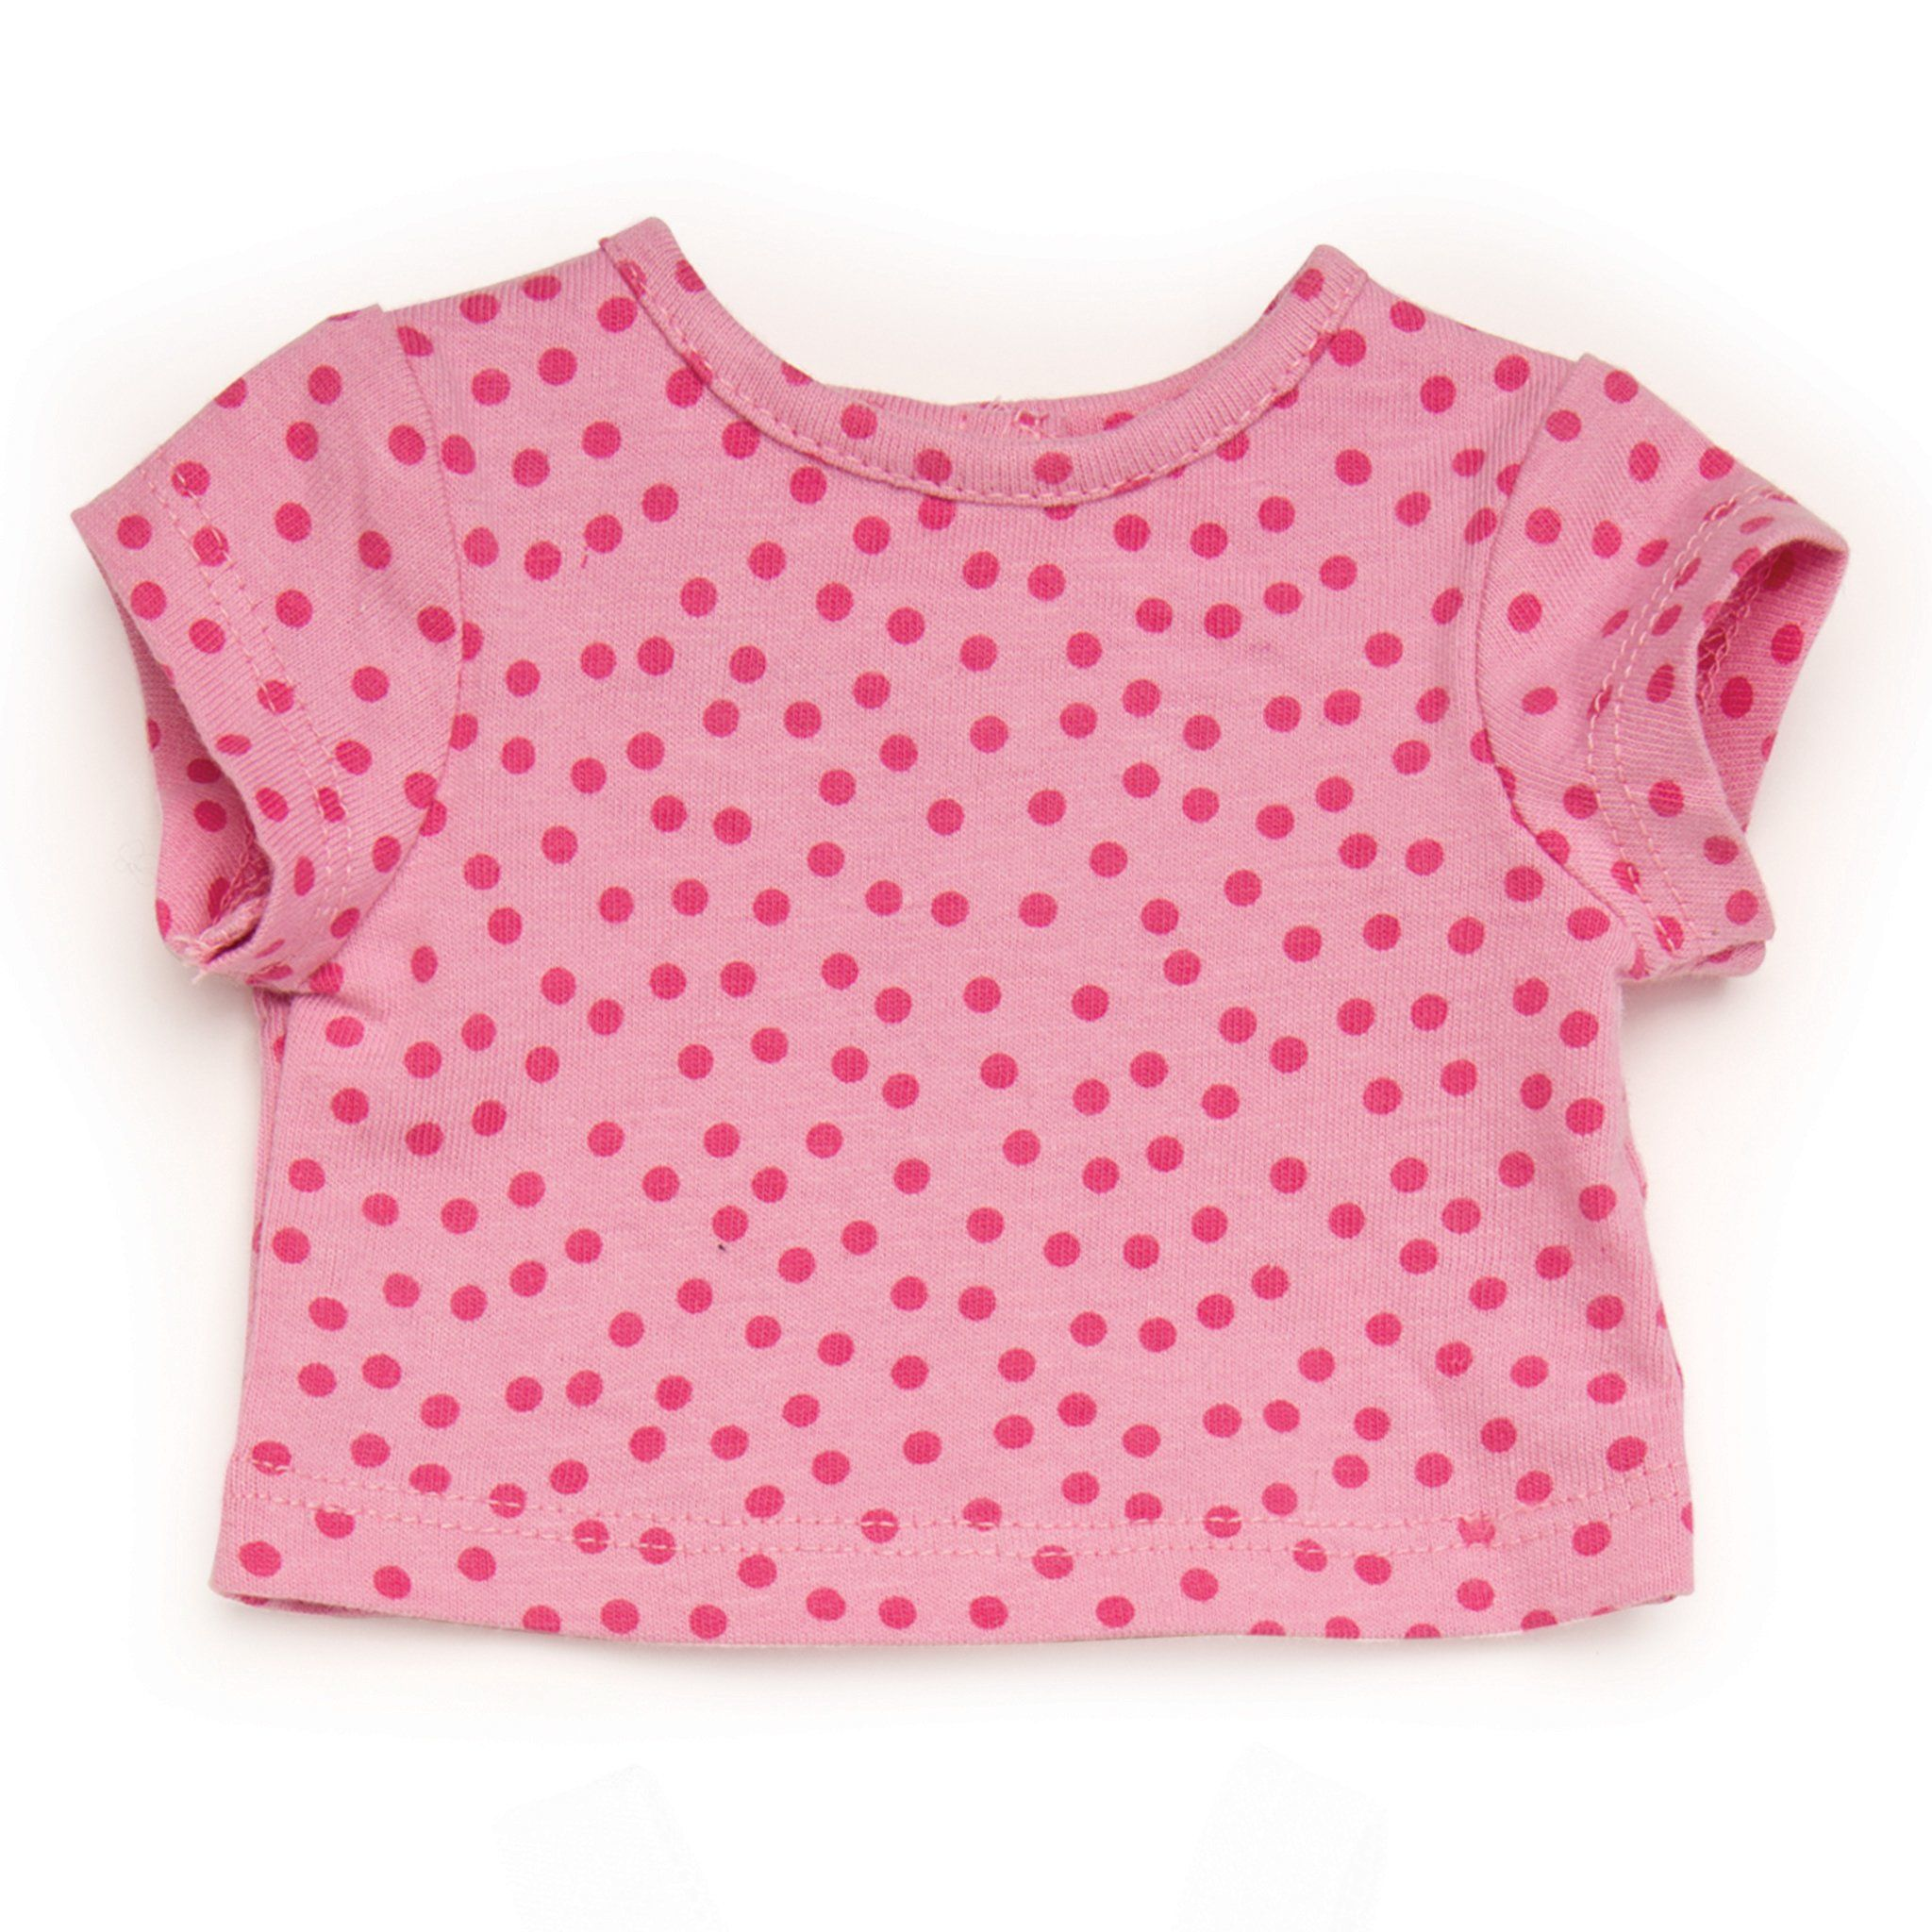 Pink polka dot t-shirt fits all 18 inch dolls